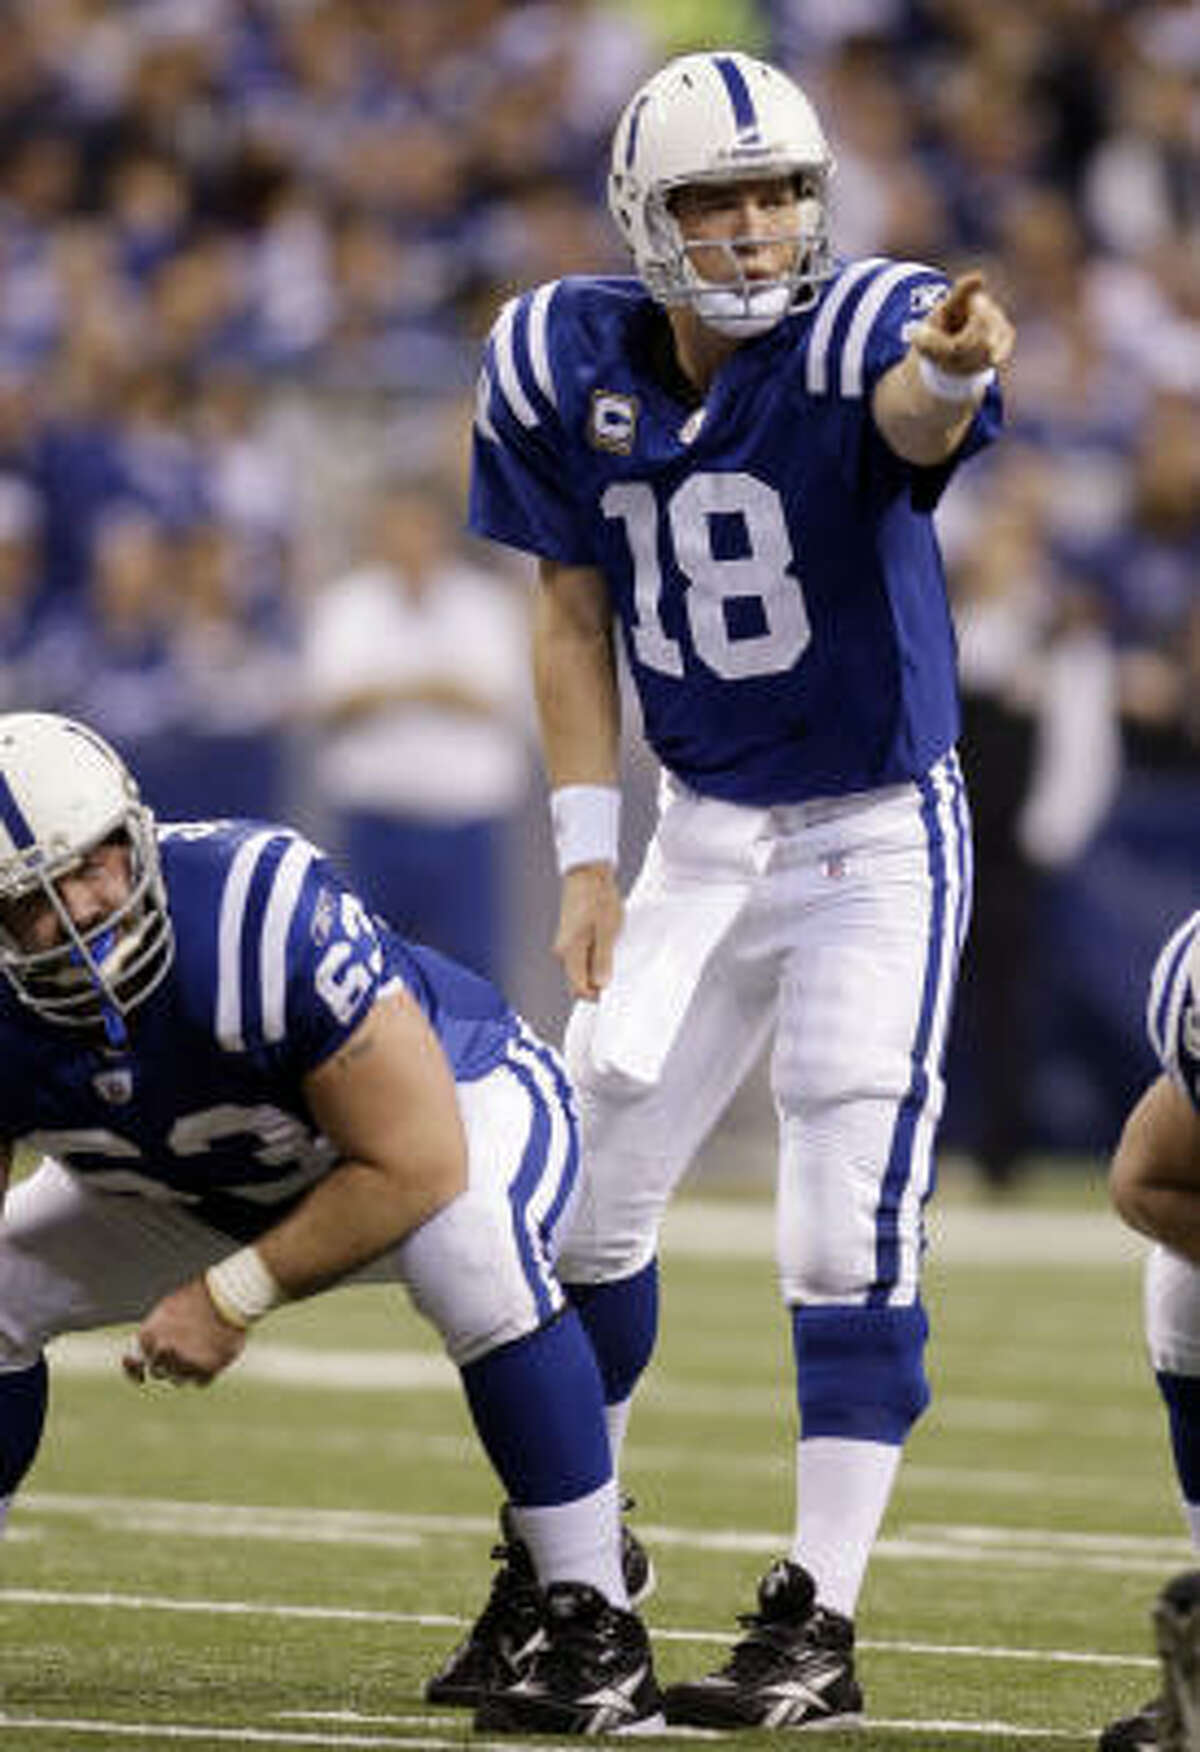 Peyton Manning Position: Quarterback Comment: Only four-time MVP in NFL history ... Led Colts to 2006 championship, winning Super Bowl in Miami and game's MVP award ... A native of New Orleans whose father, Archie, was Saints' first star ... Trying to become first reigning MVP to win Super Bowl since Kurt Warner in 1999 ... Set NFL record for 300-yard playoff games with his seventh in AFC title game win over Jets, going 26-of-39 for 377 yards ... Is No. 3 in postseason completions ... Had instrumental role in development of young WRs this season.